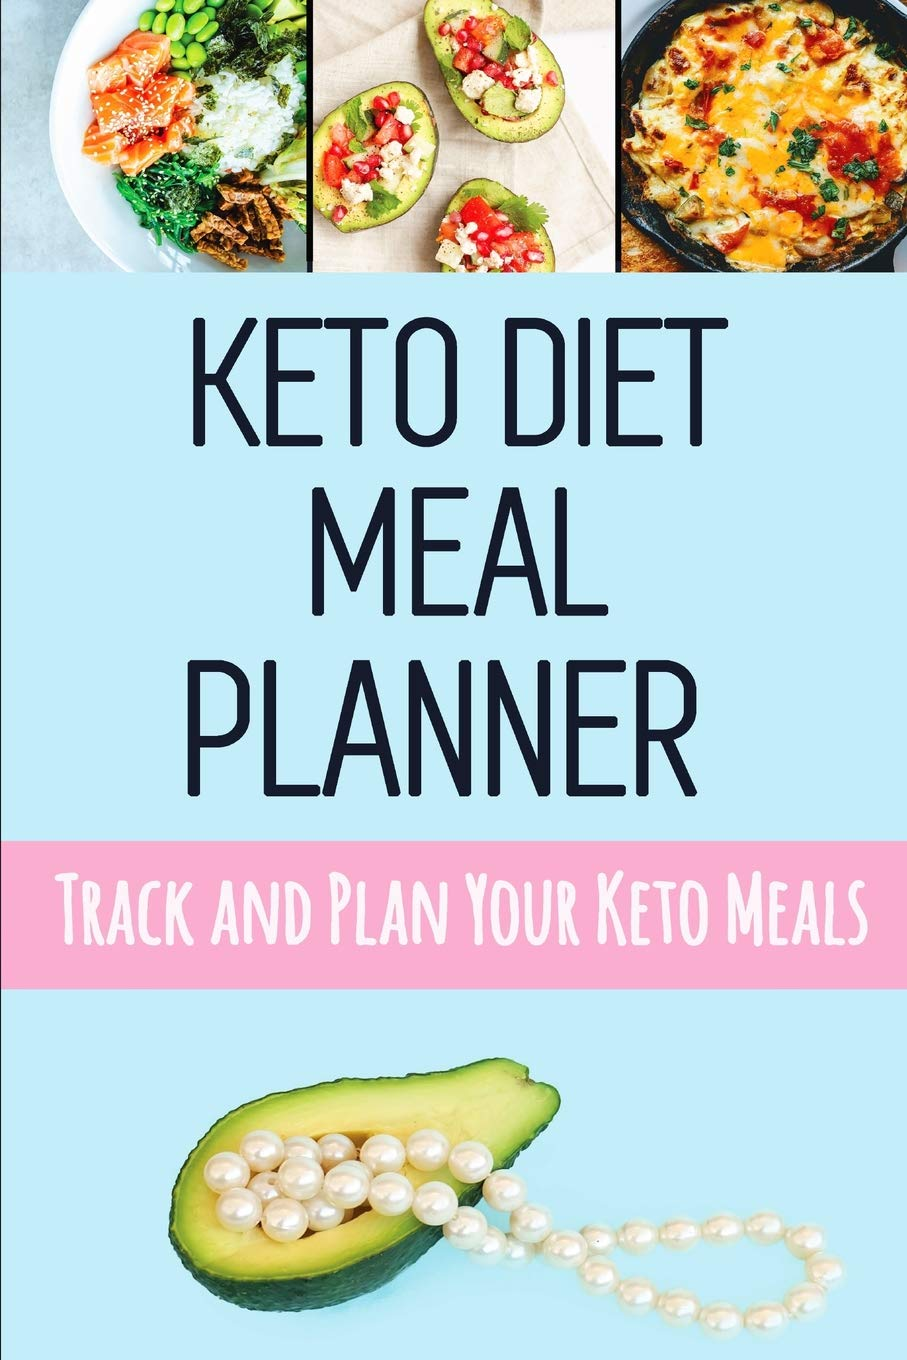 nutrient tracker for keto diets